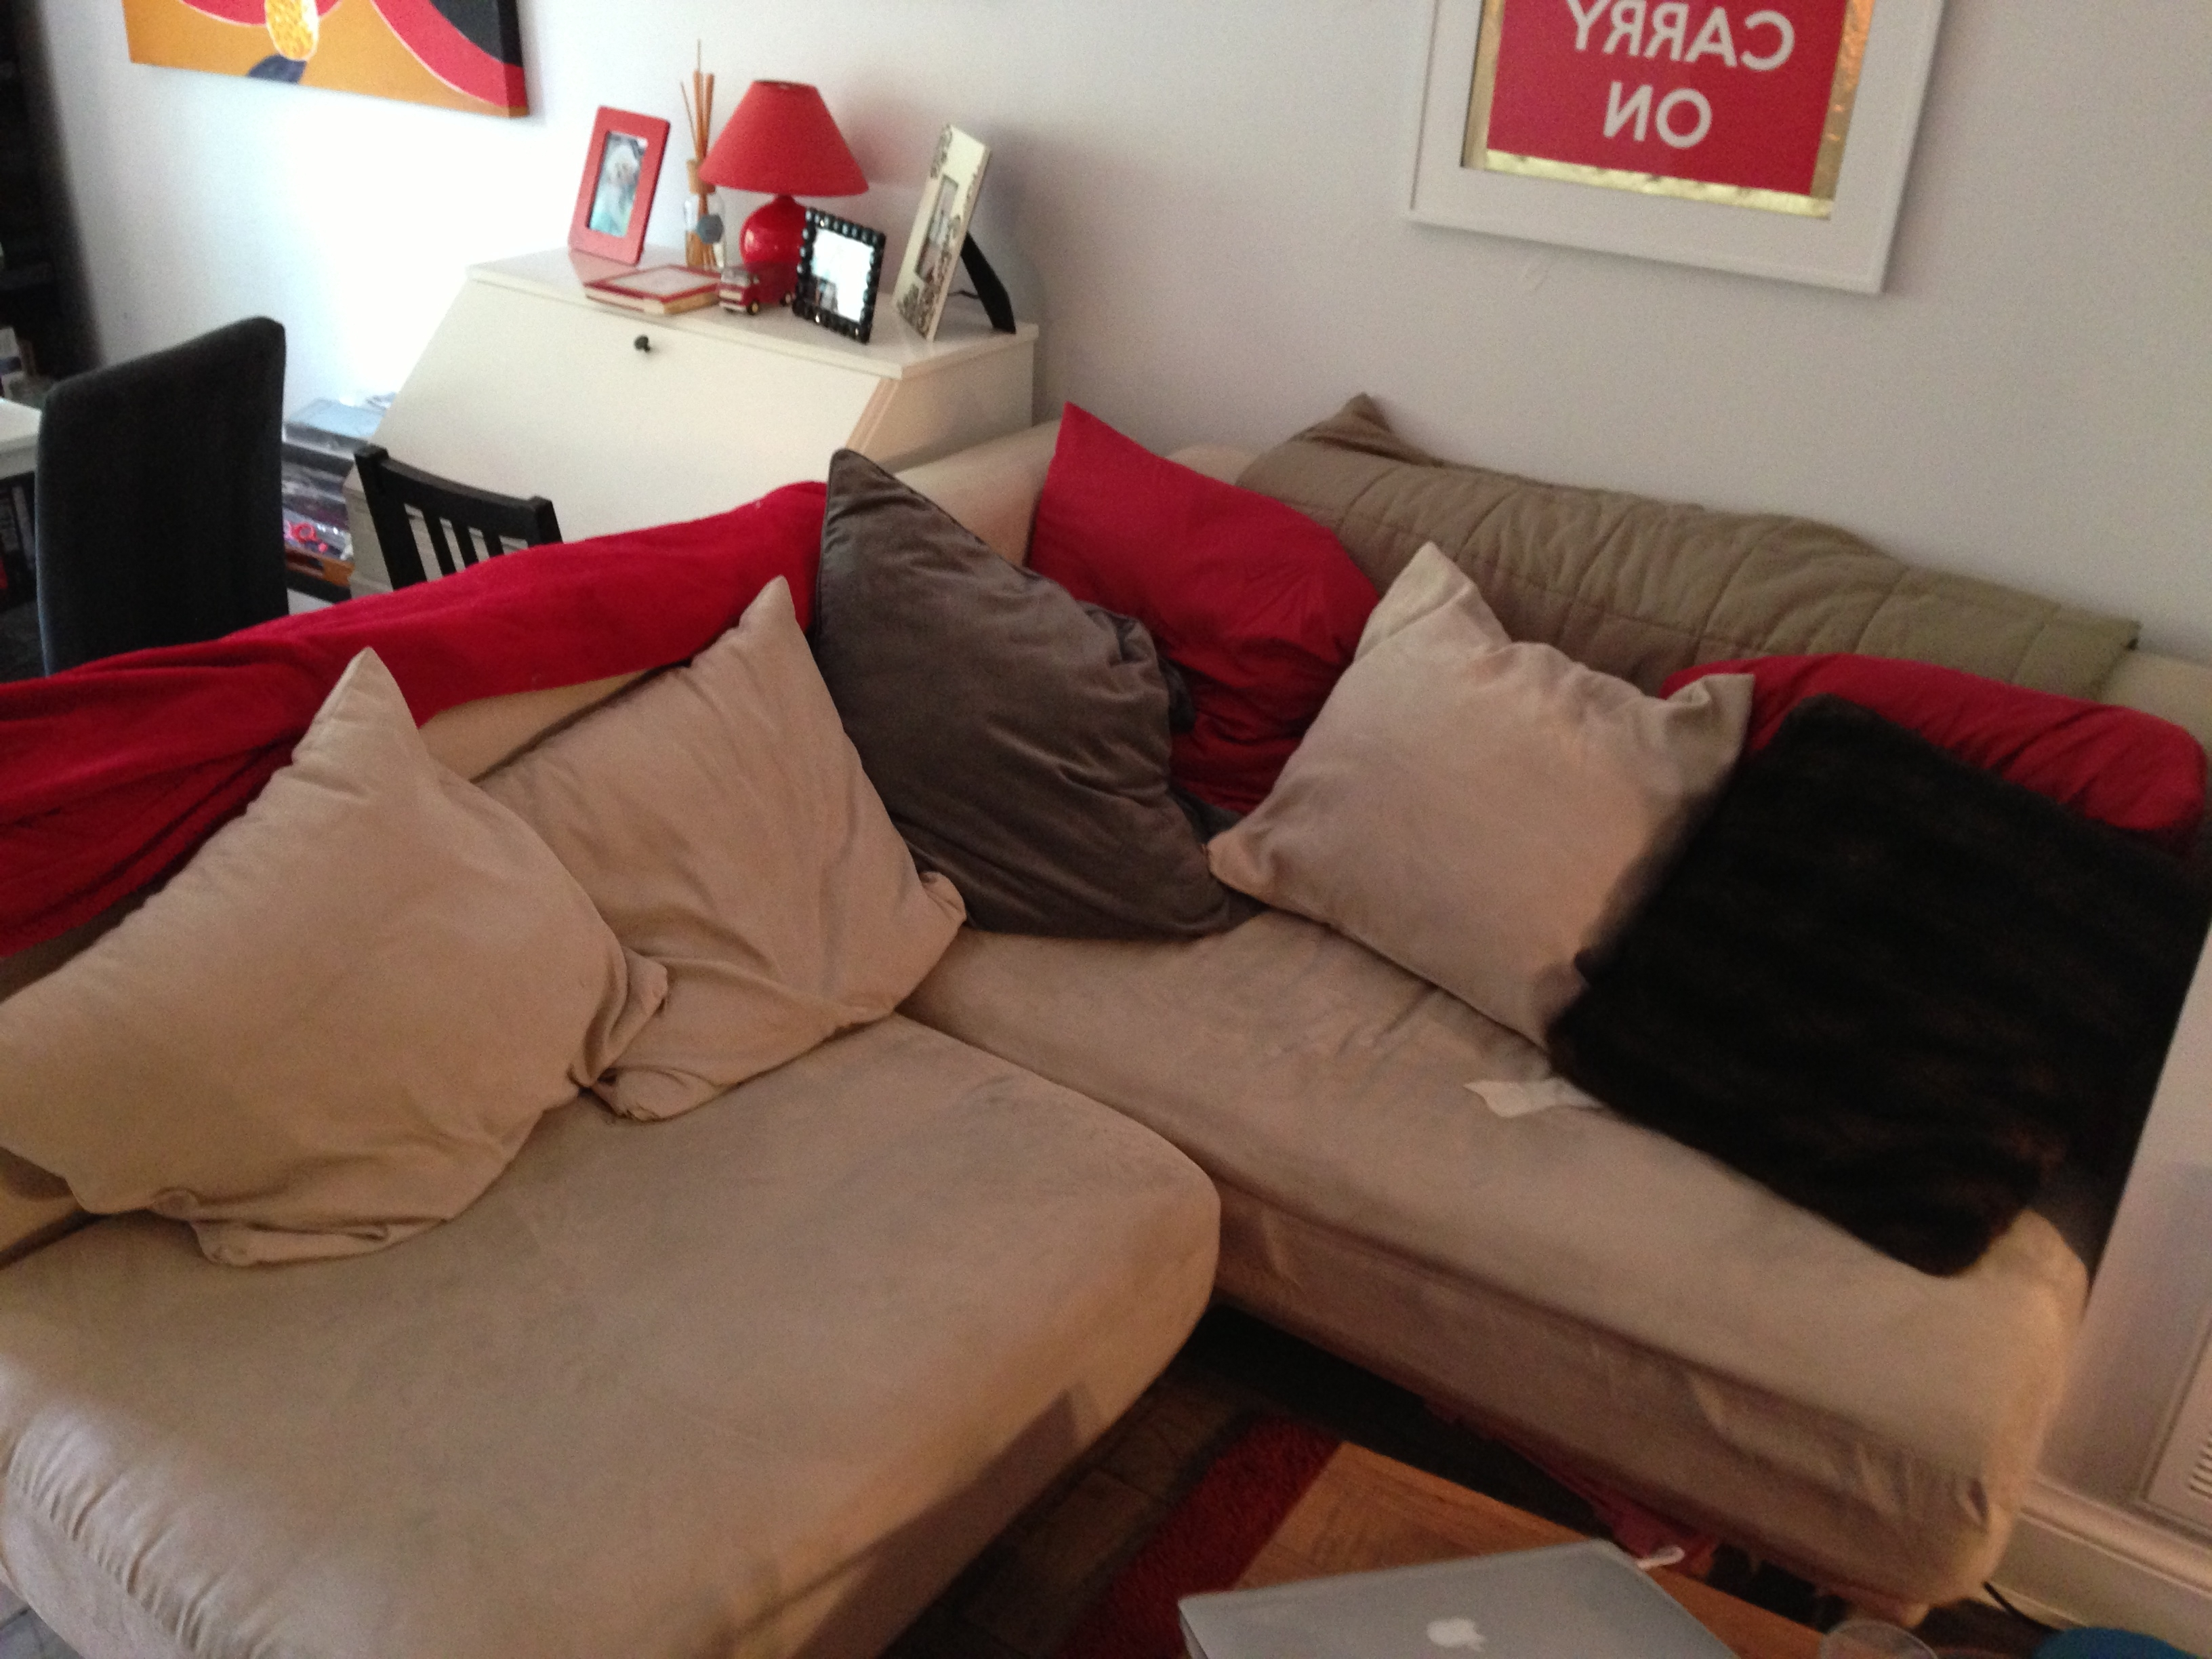 Used Sectional Sofas Within Recent Used Sectional Sofas Sale (View 4 of 15)